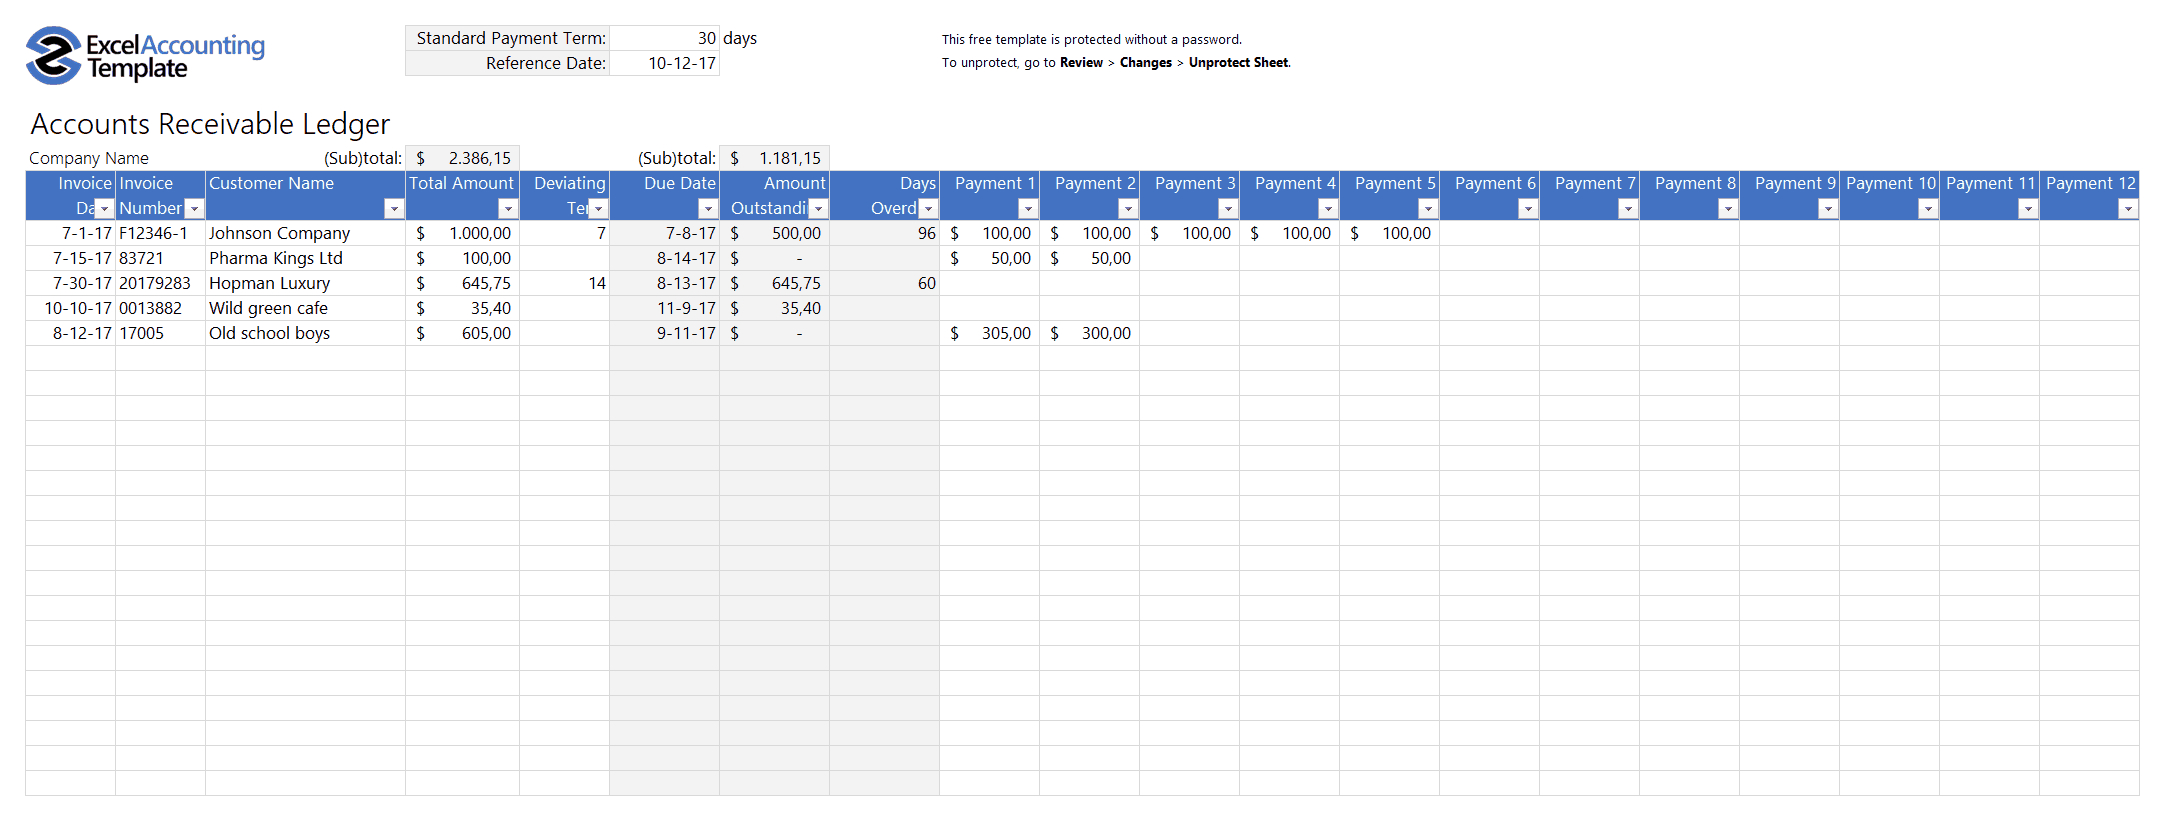 Free Accounting Templates In Excel   Download For Your Business In Free Accounts Payable Templates